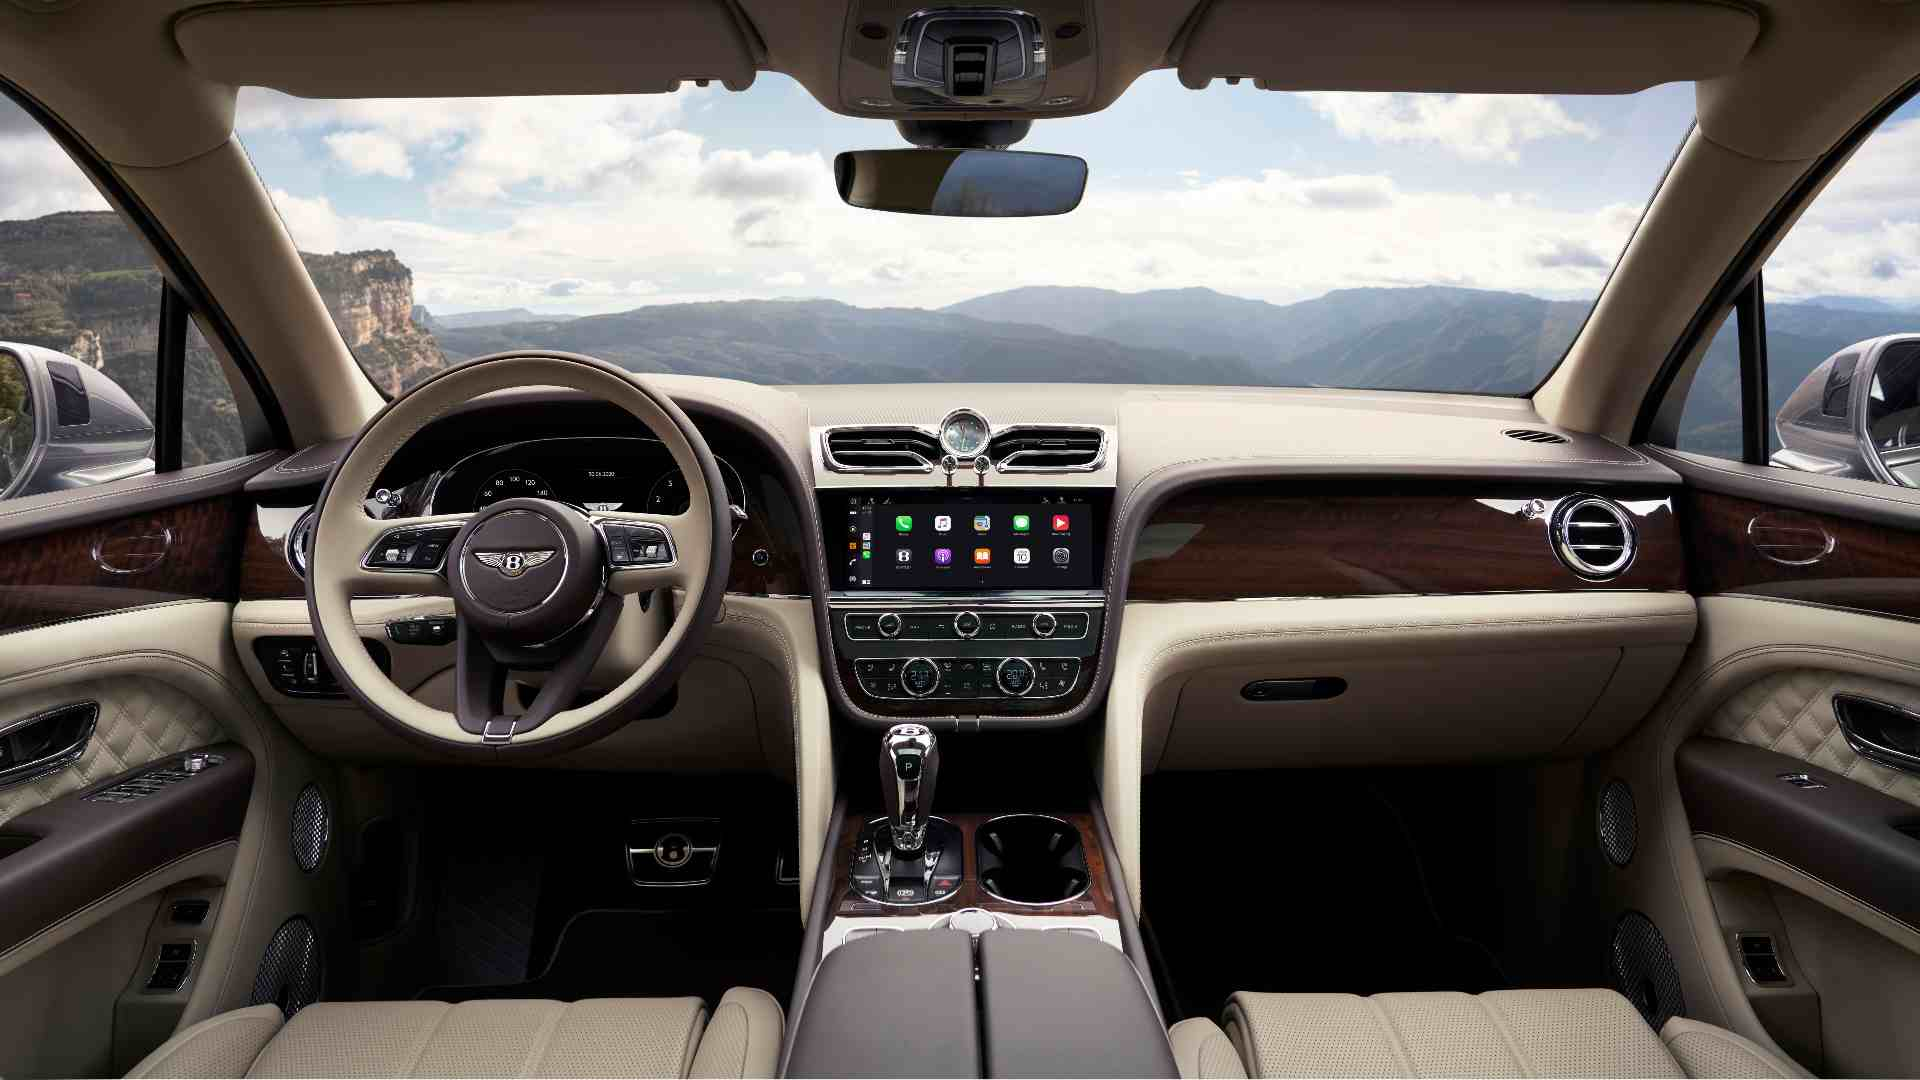 Taking centre stage on the 2021 Bentley Bentayga's dash is a new, 10.9-inch touchscreen infotainment system. Image: Bentley